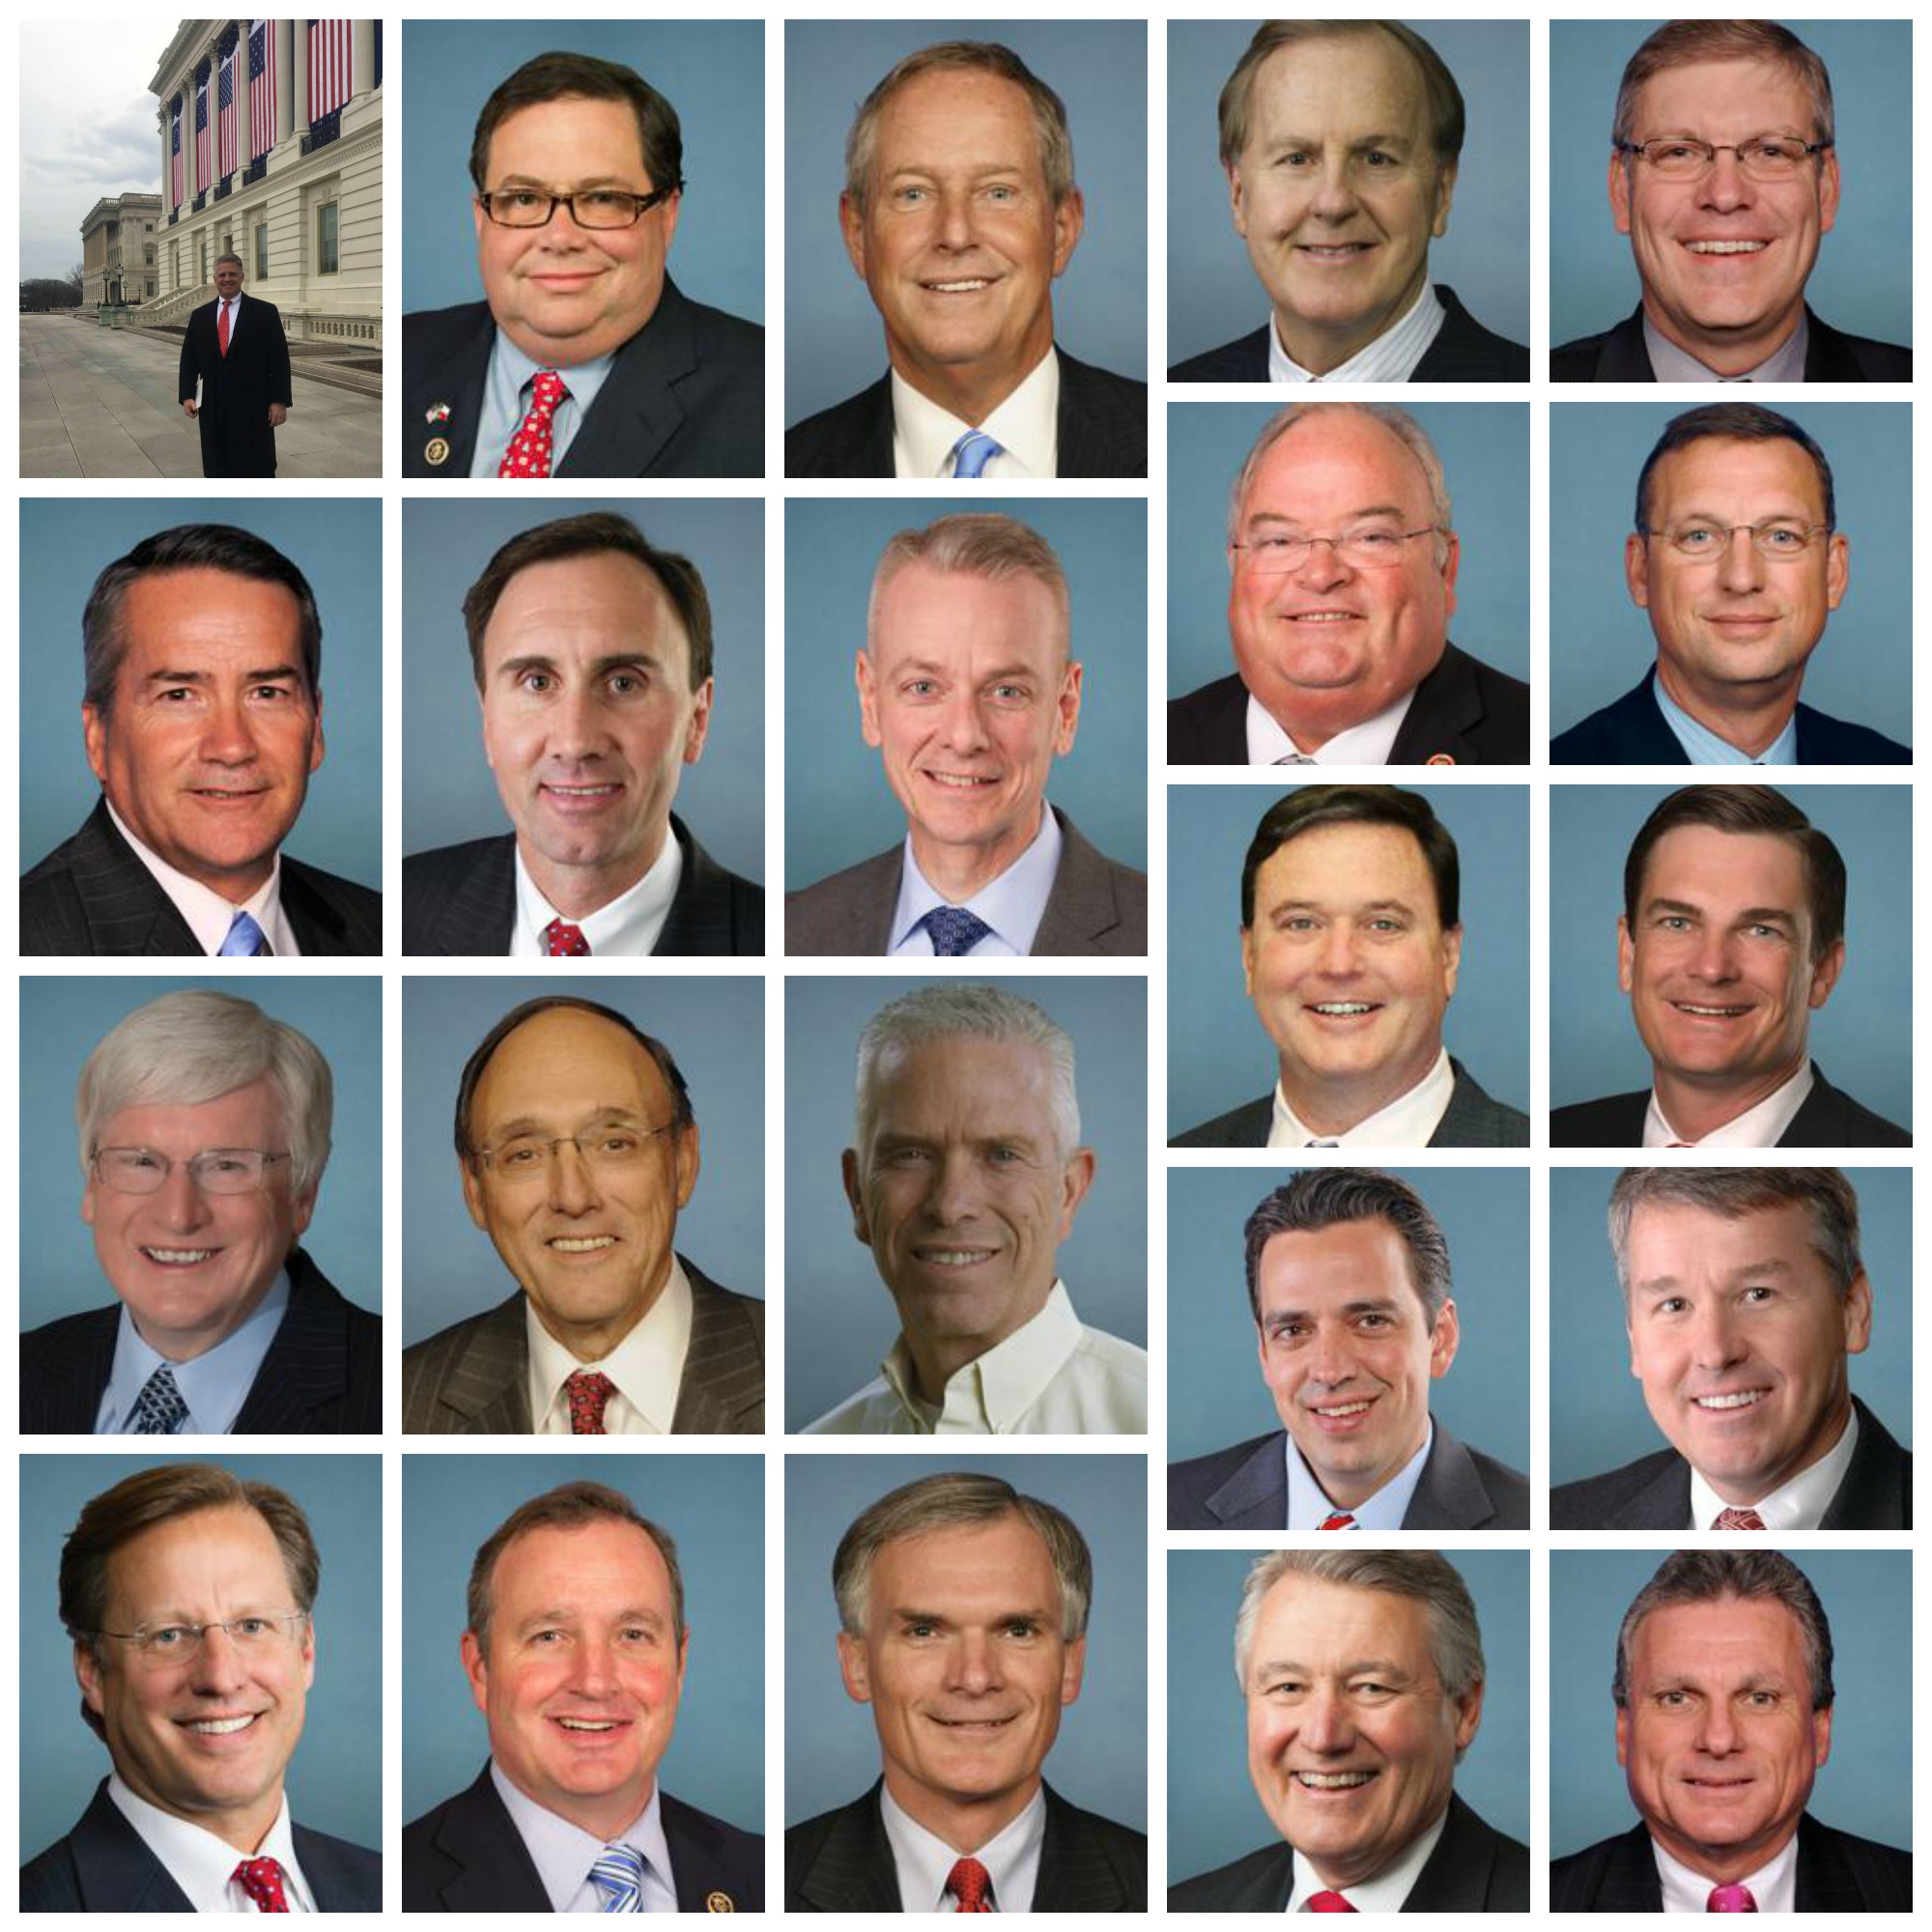 These are the Representatives sponsoring the bill. Notice what they have in common?